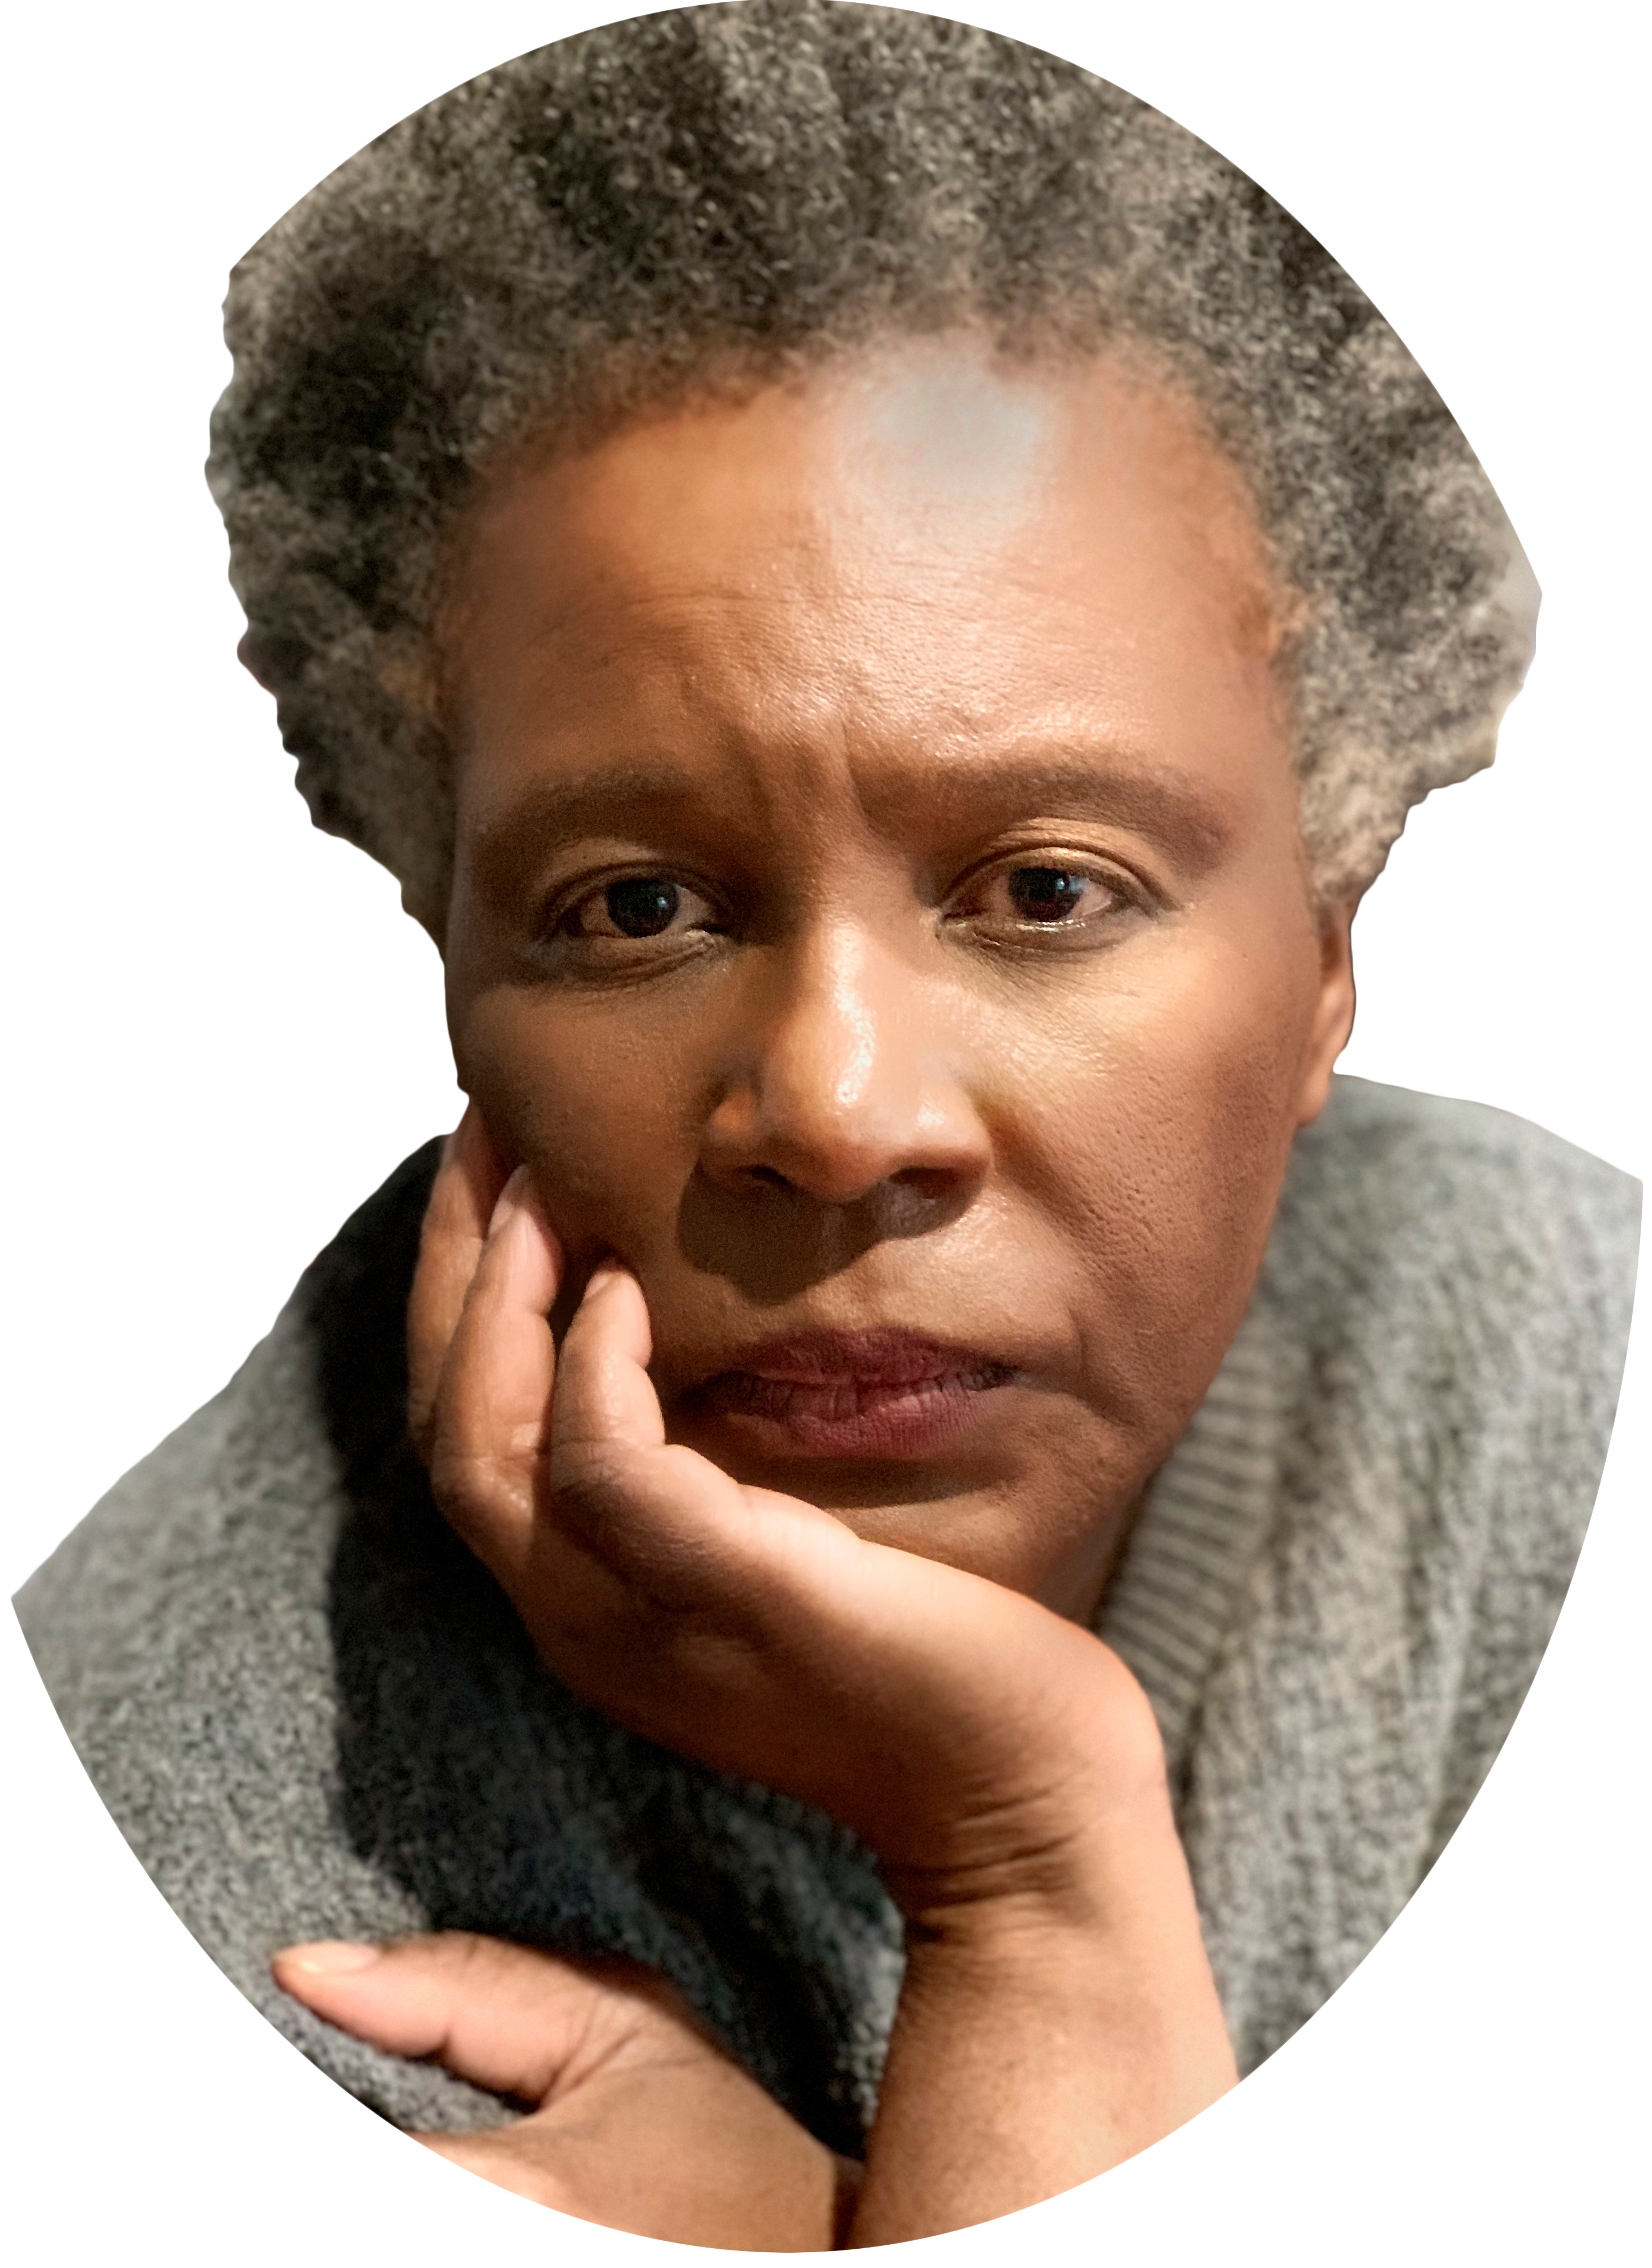 Award-winning author Claudia Rankine discusses Just Us with editor-in-chief Tom Beer.